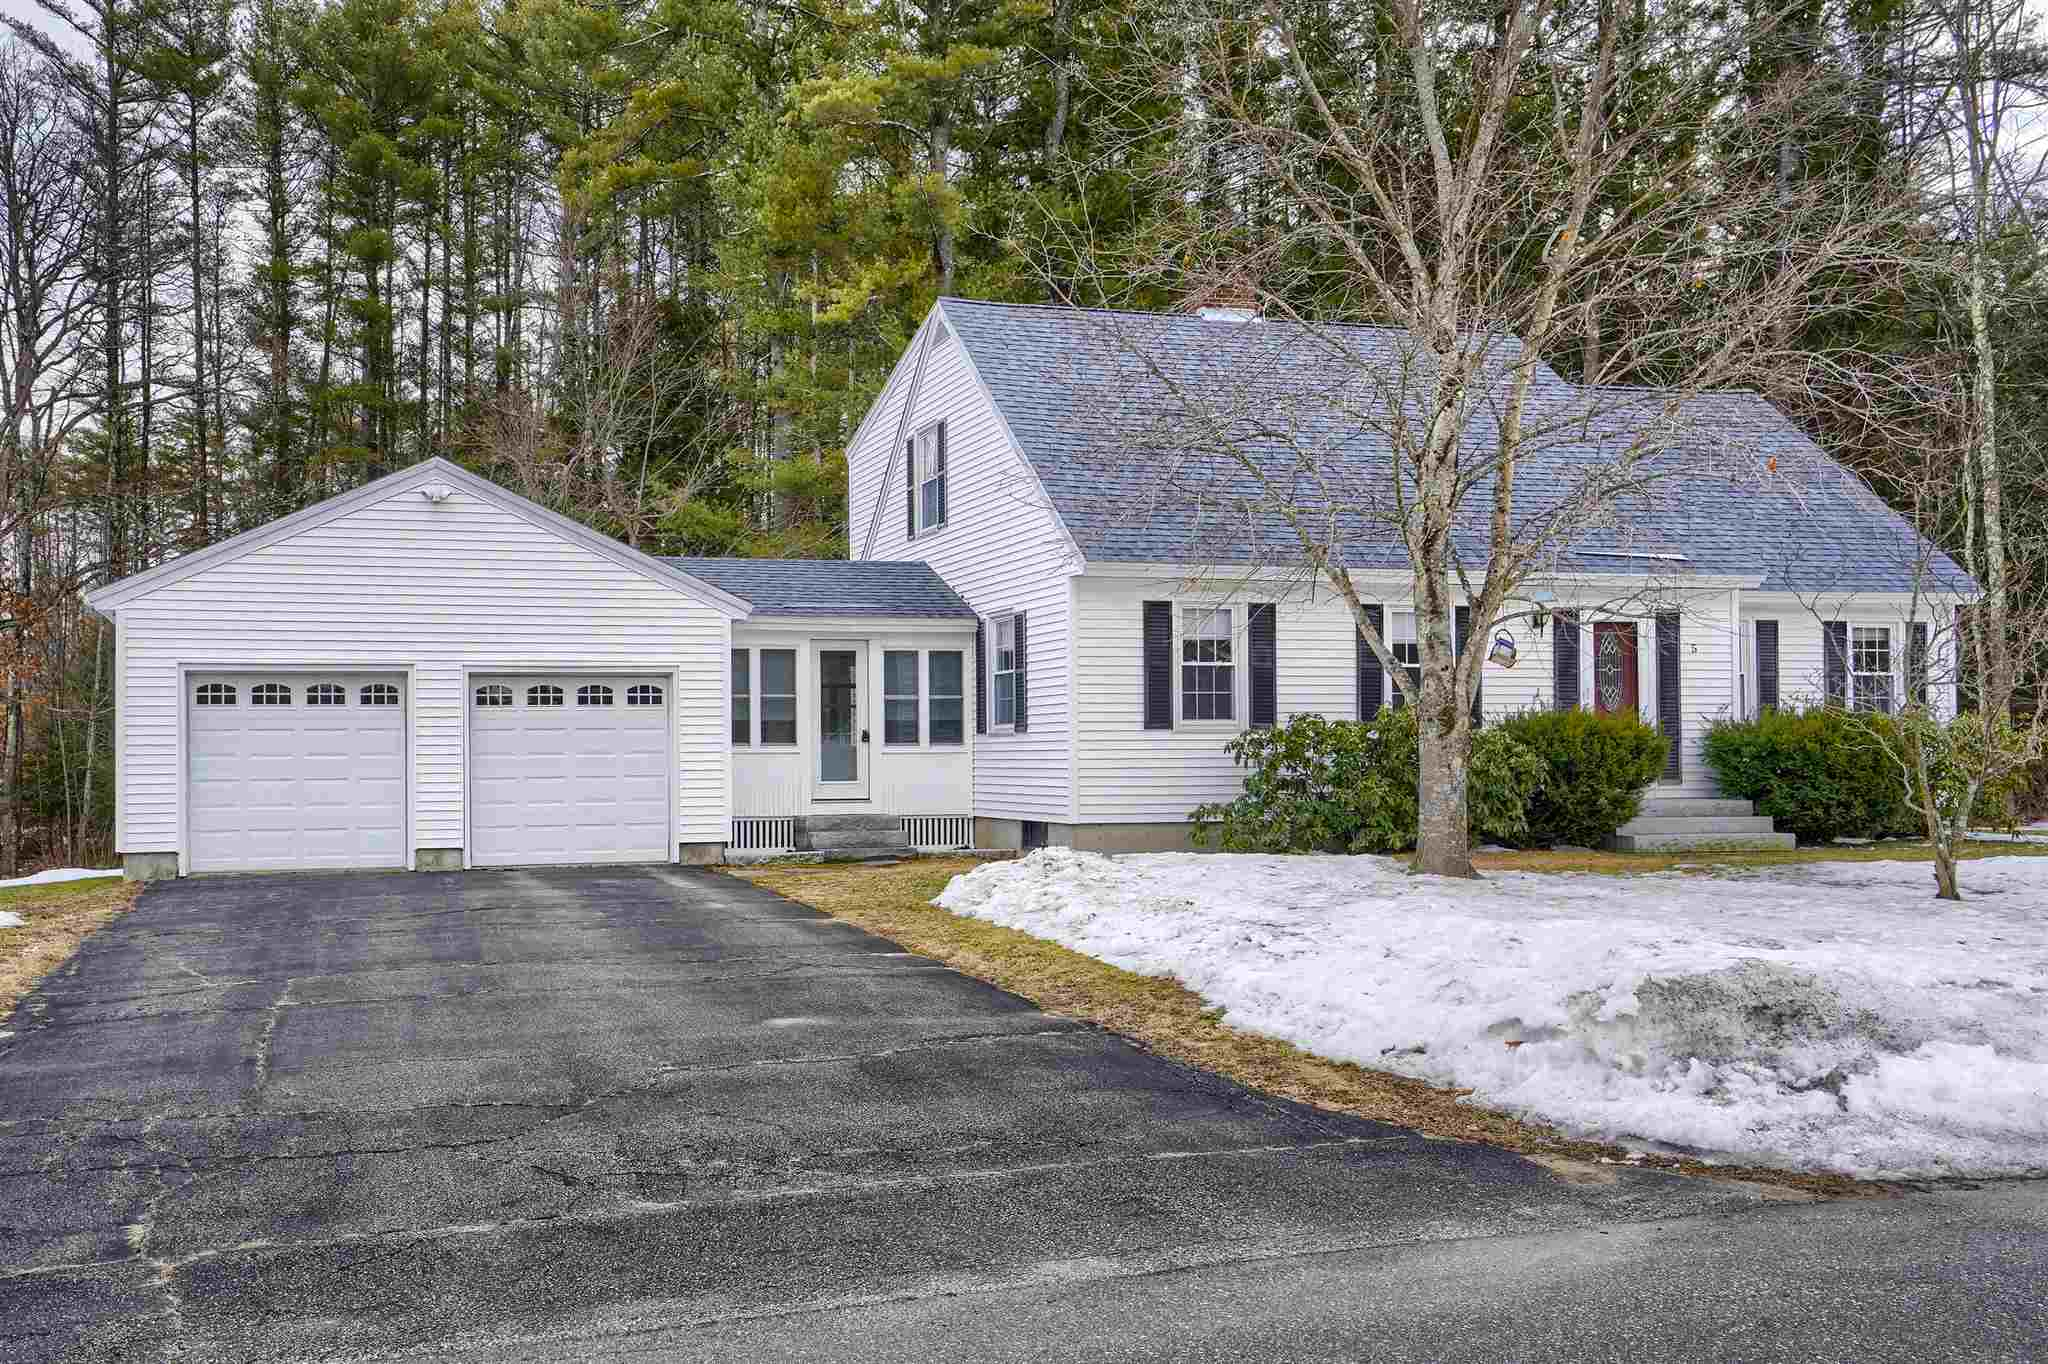 Photo of 5 Hermsdorf Avenue Goffstown NH 03045